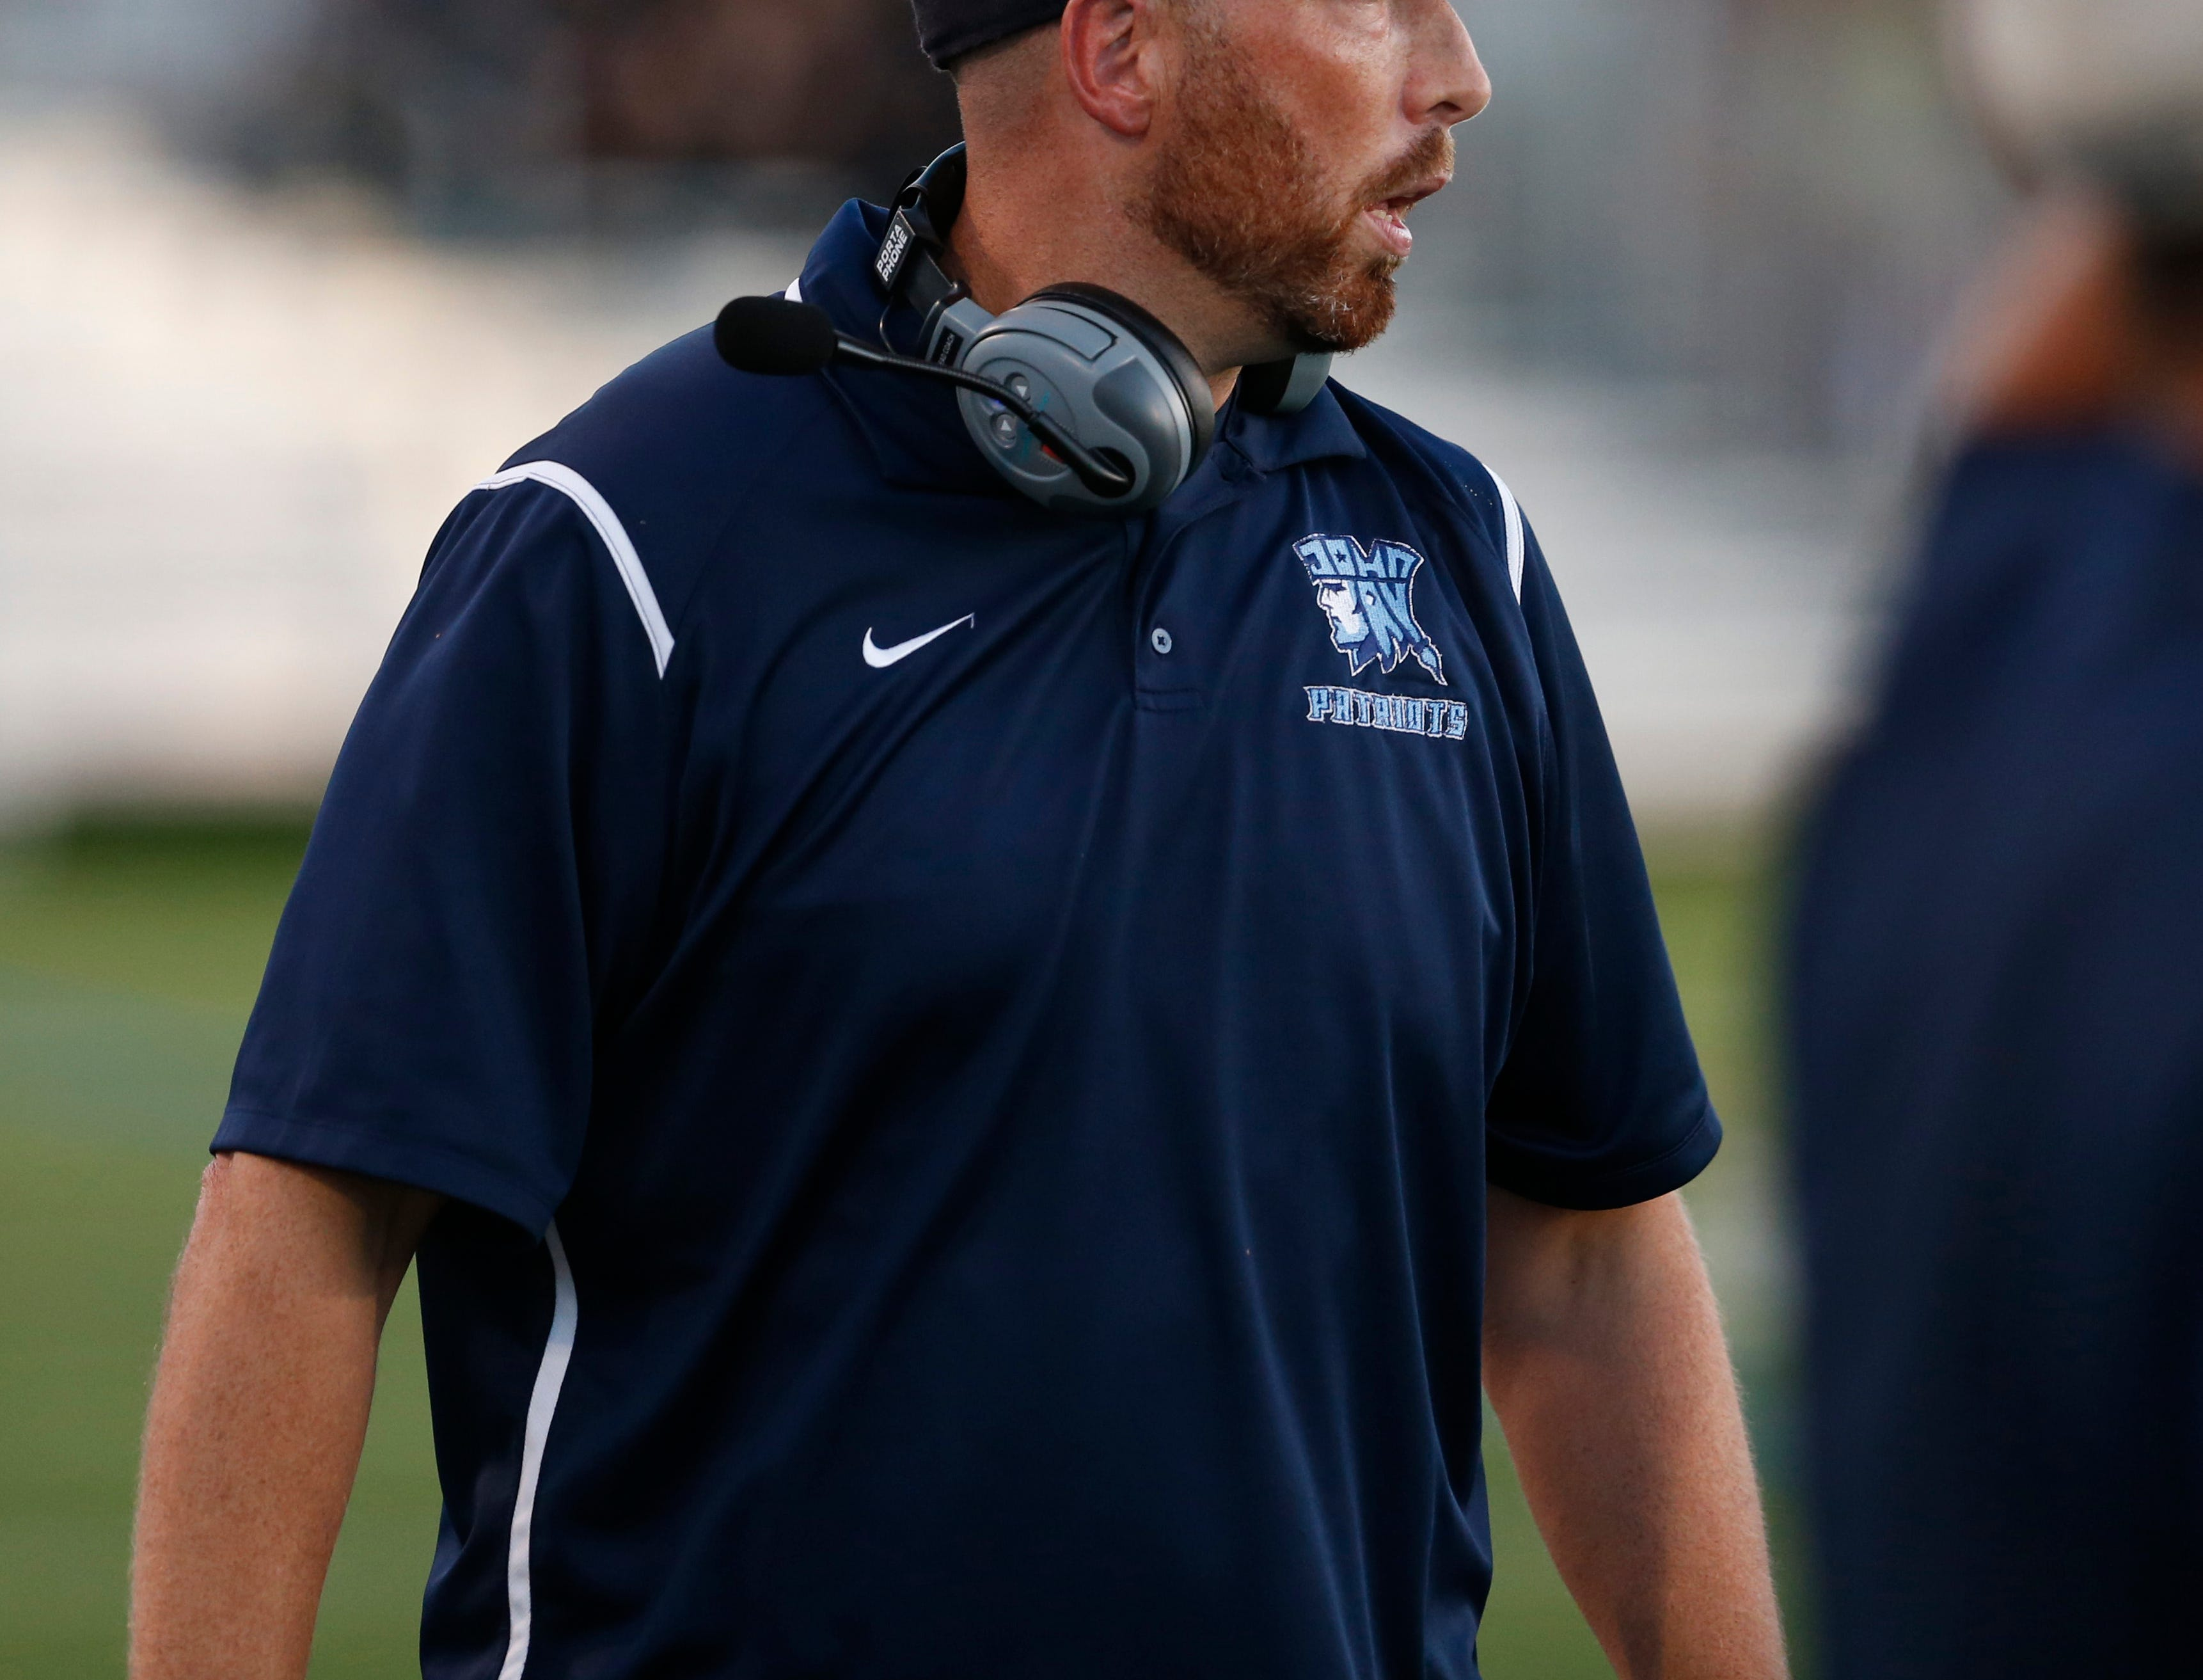 John Jay football coach Tom O'Hare walks the sidelines during a Sept. 14 game against Arlington.